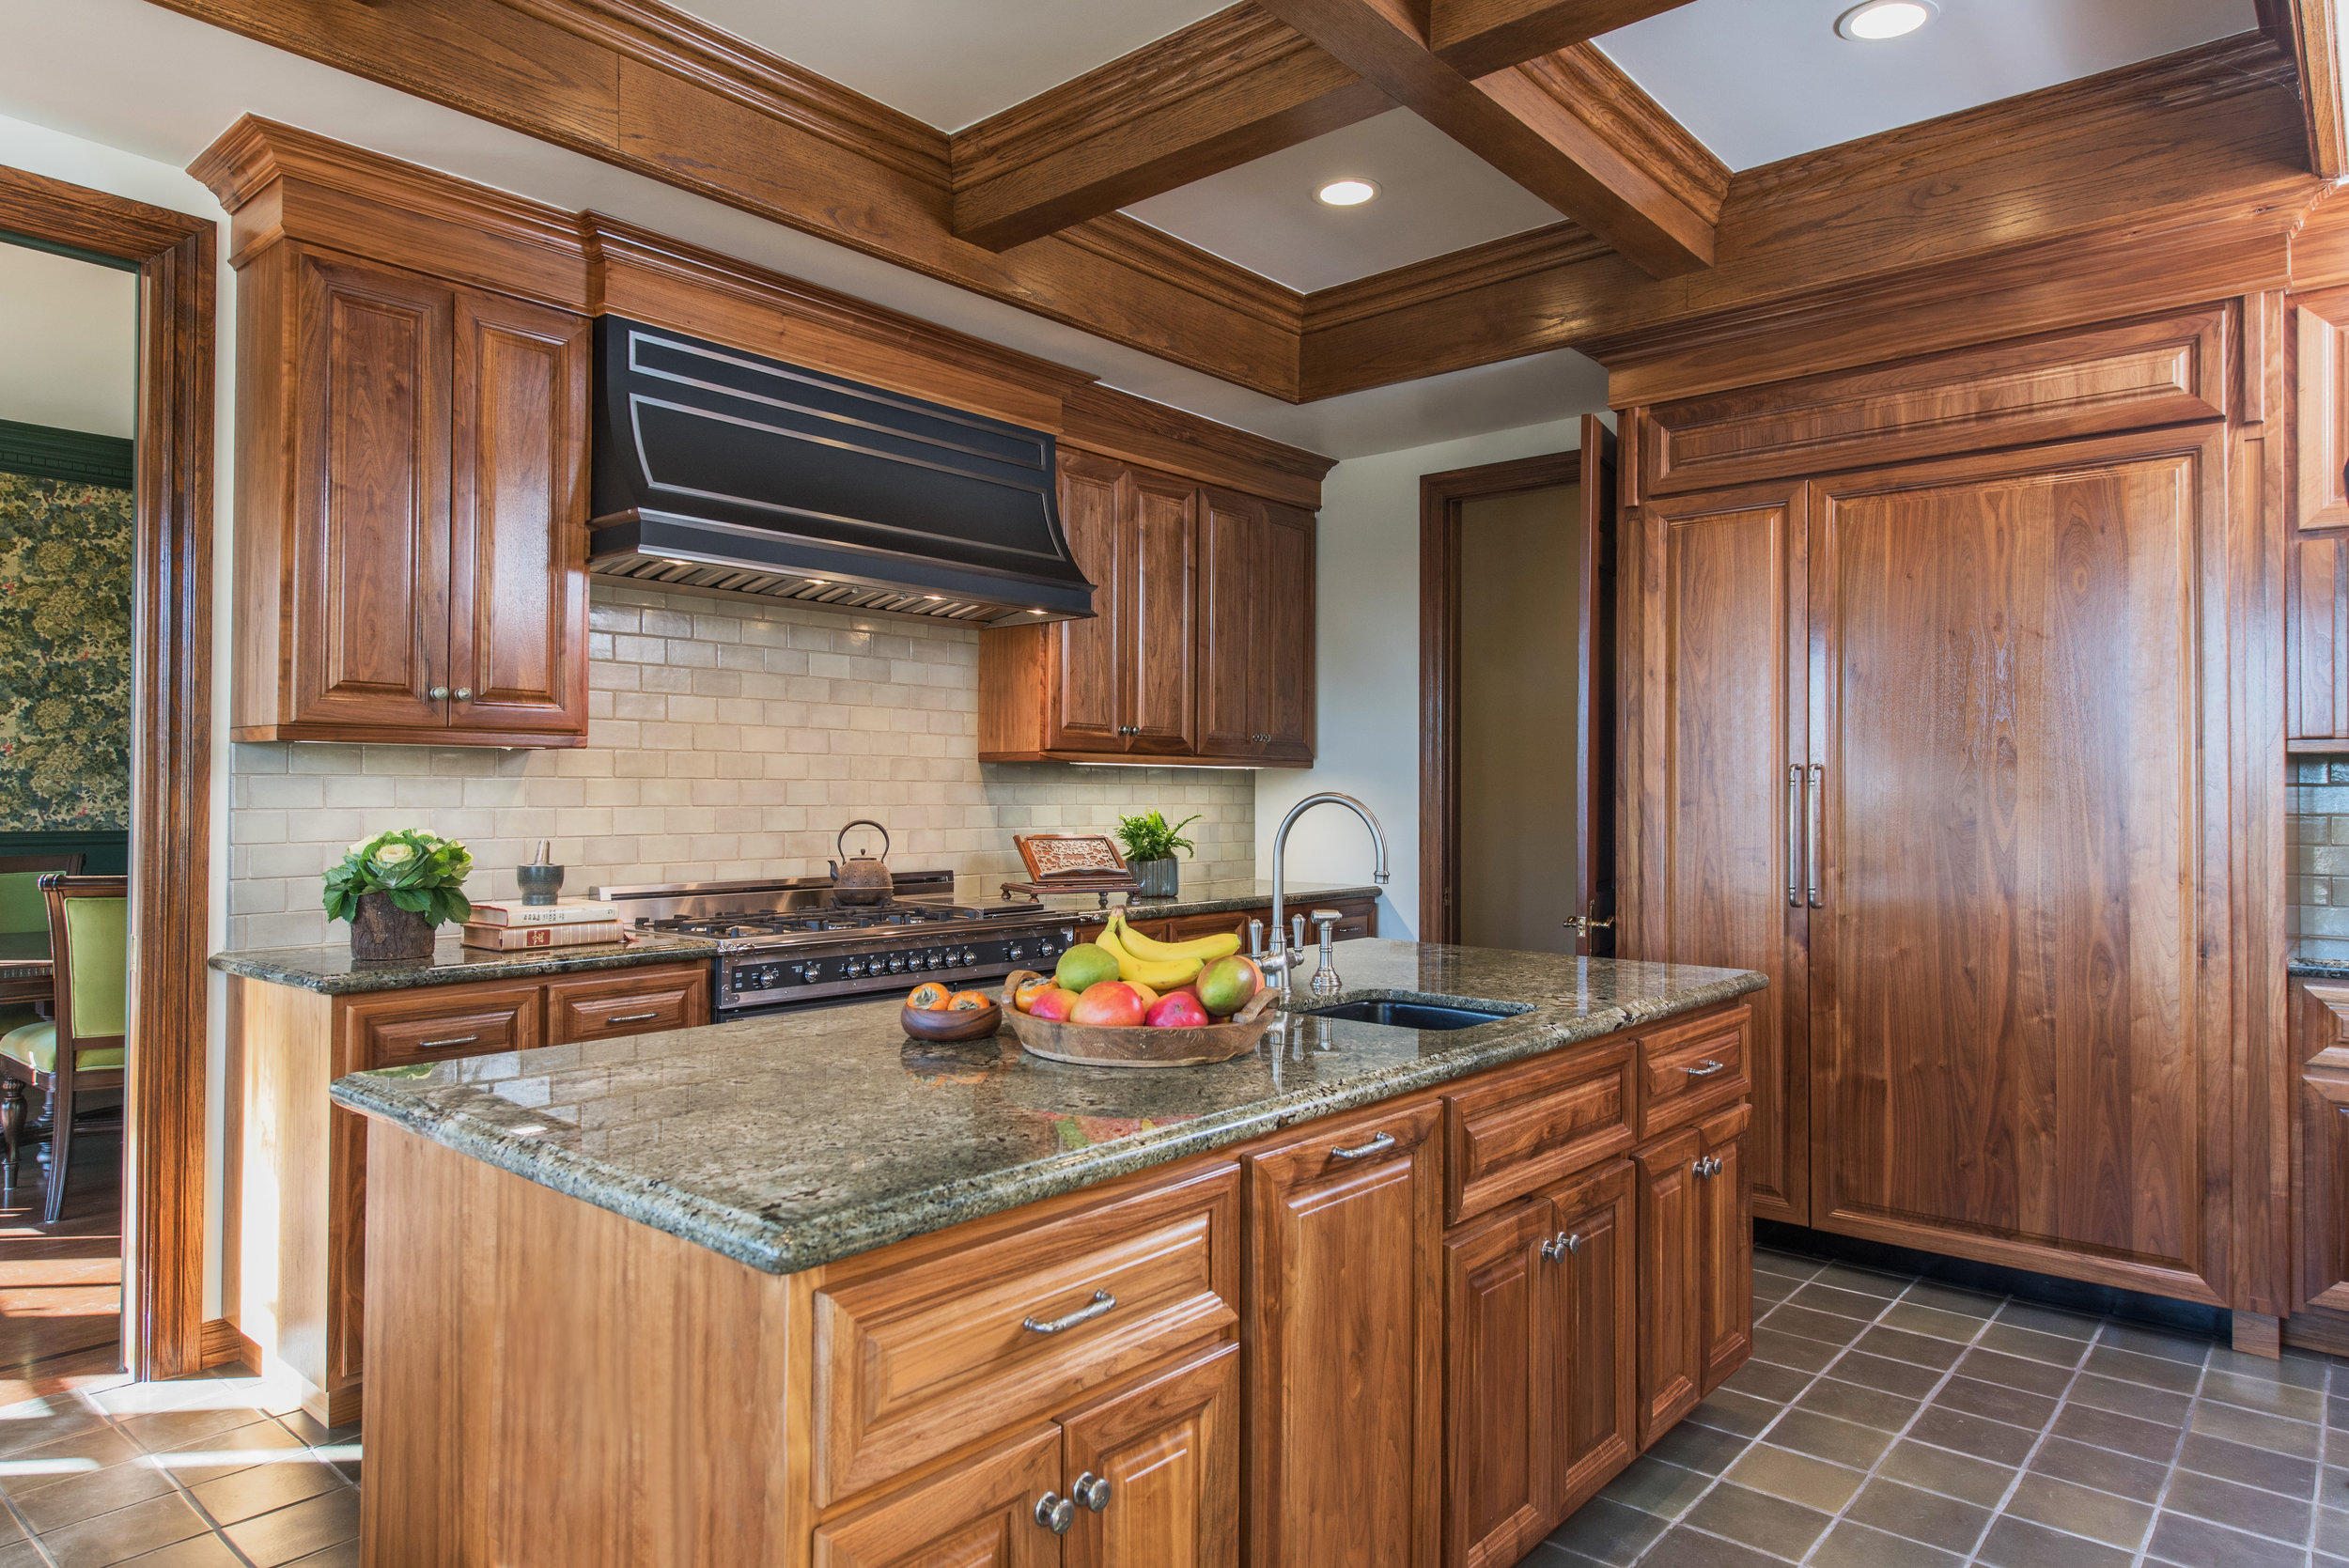 walnut cabinets kitchen chair with arms sarah barnard design traditional in a pacific the original oak coffered ceiling was restored to complement bespoke american center island is outfitted deep green